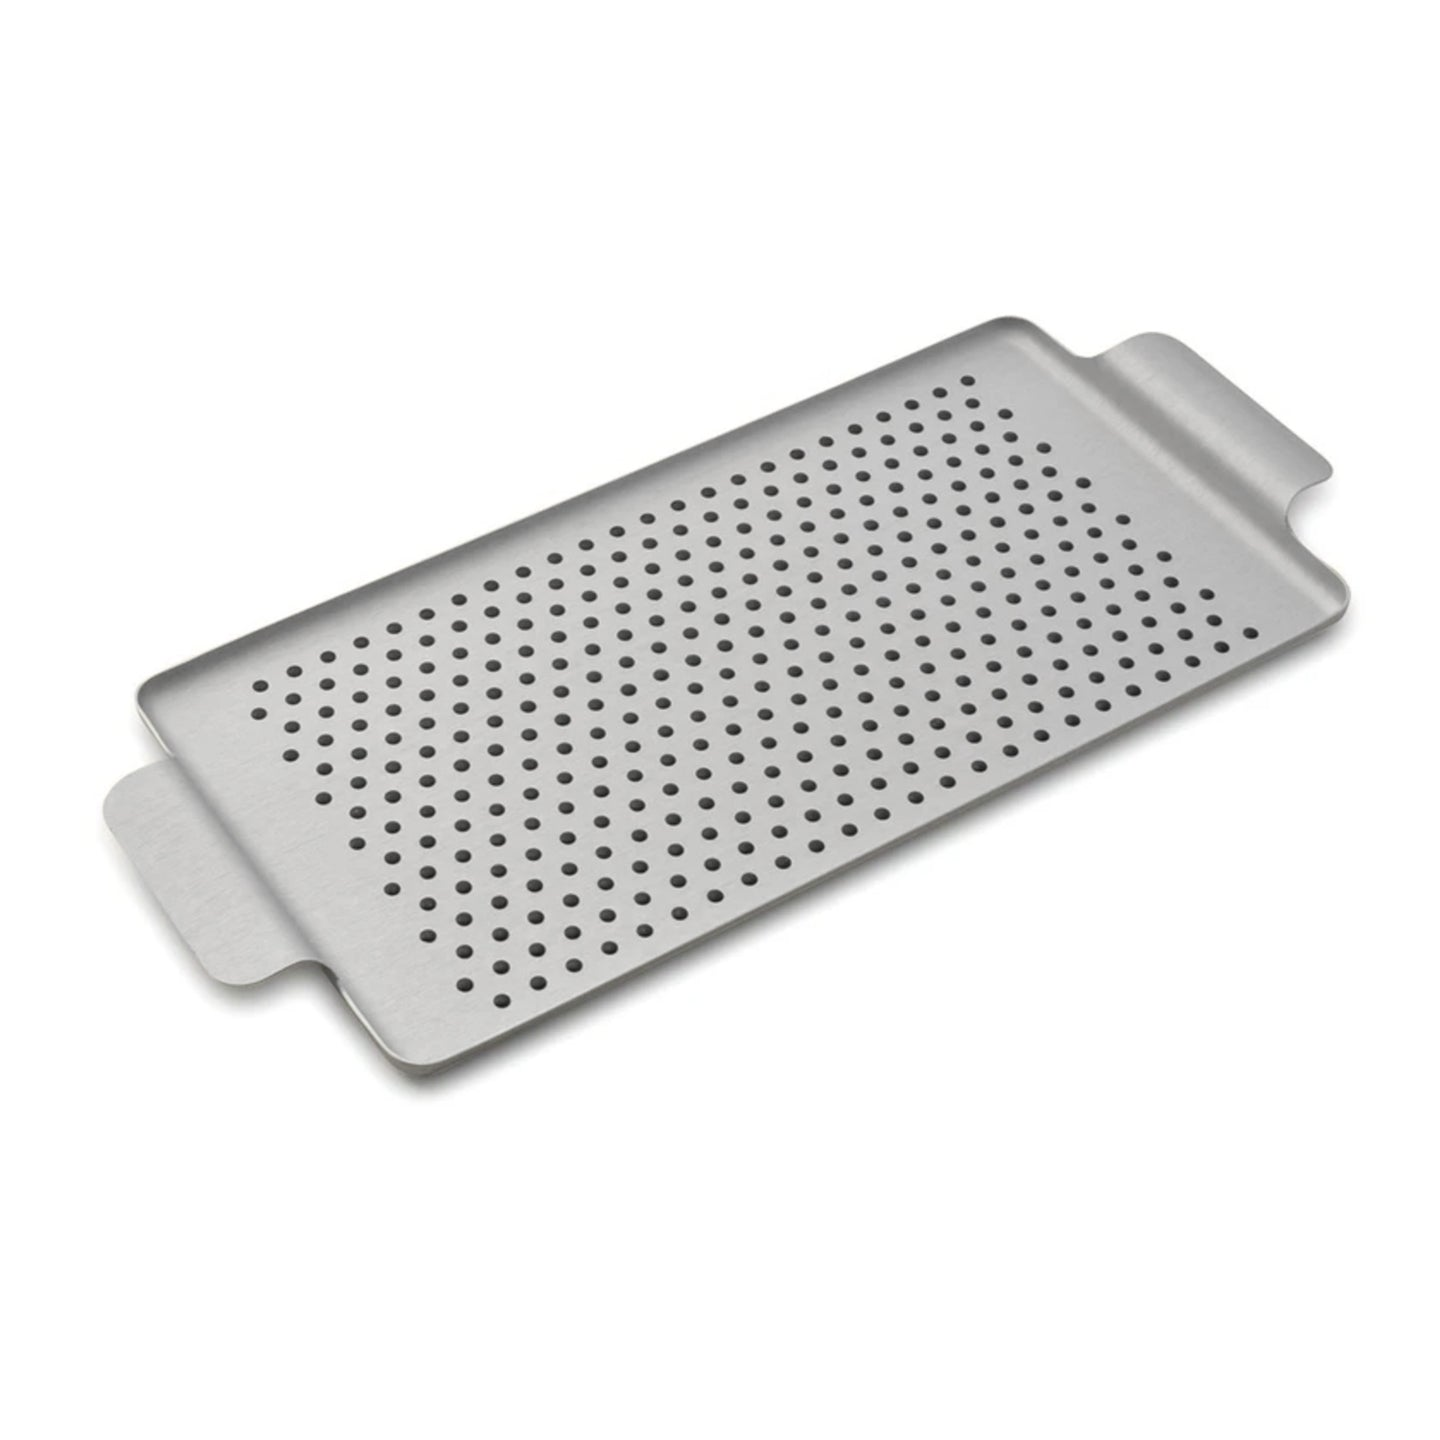 Kaymet Serving Tray Rectangle Silver and Rubber